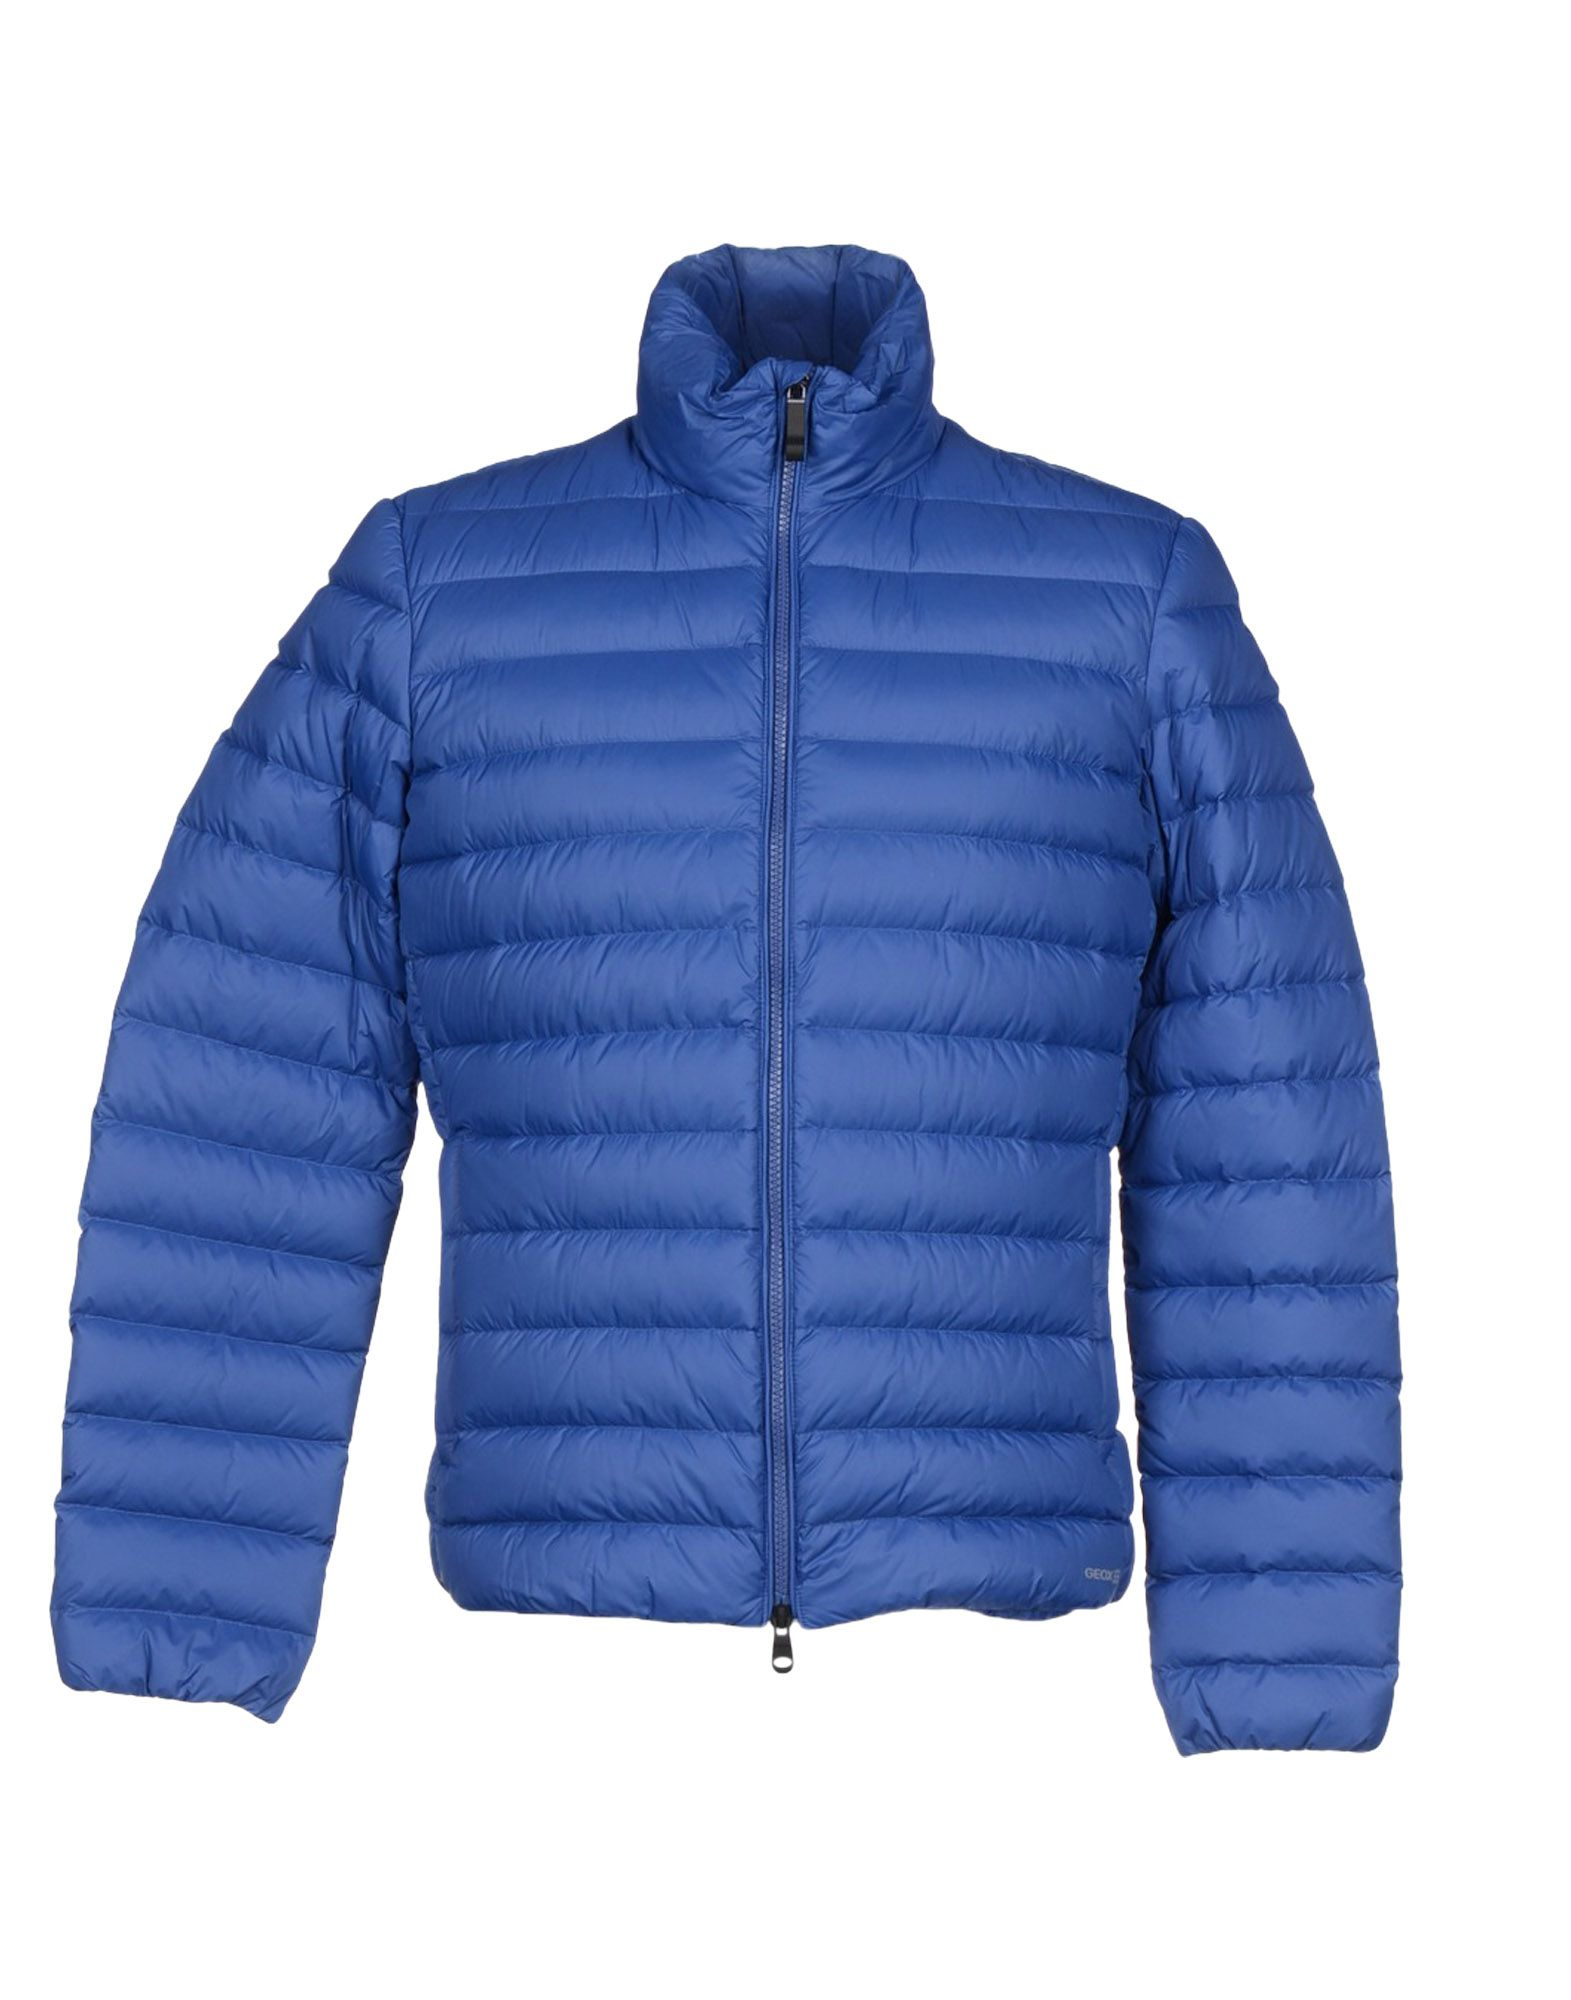 Free shipping and returns on Men's Blue Coats & Jackets at avupude.ml